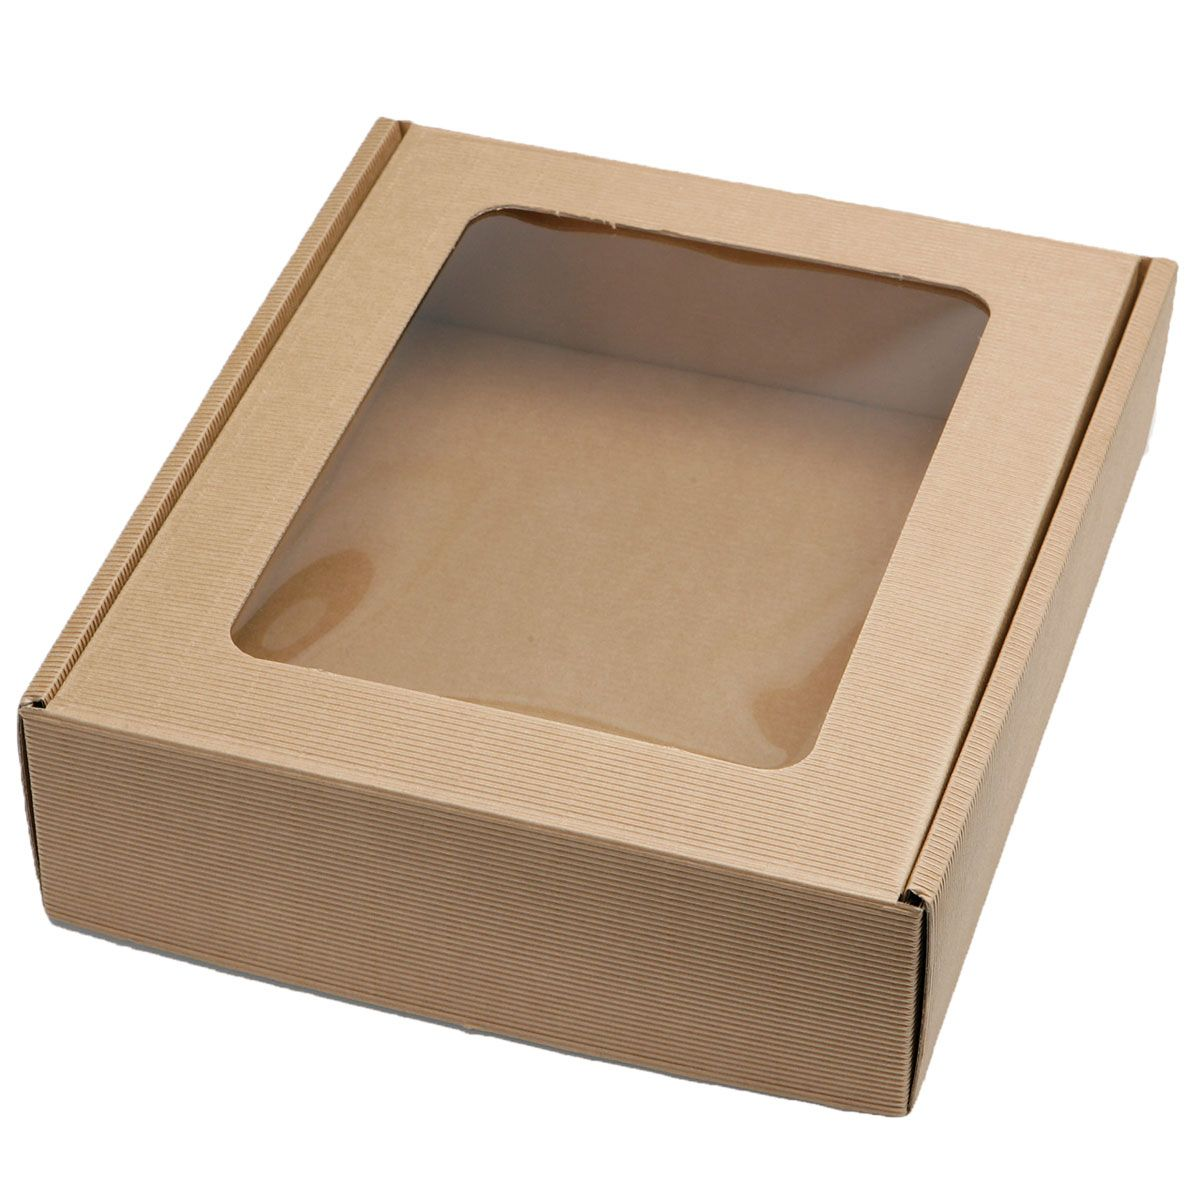 Favor Boxes And Containers : Large natural gift hamper bottle box card